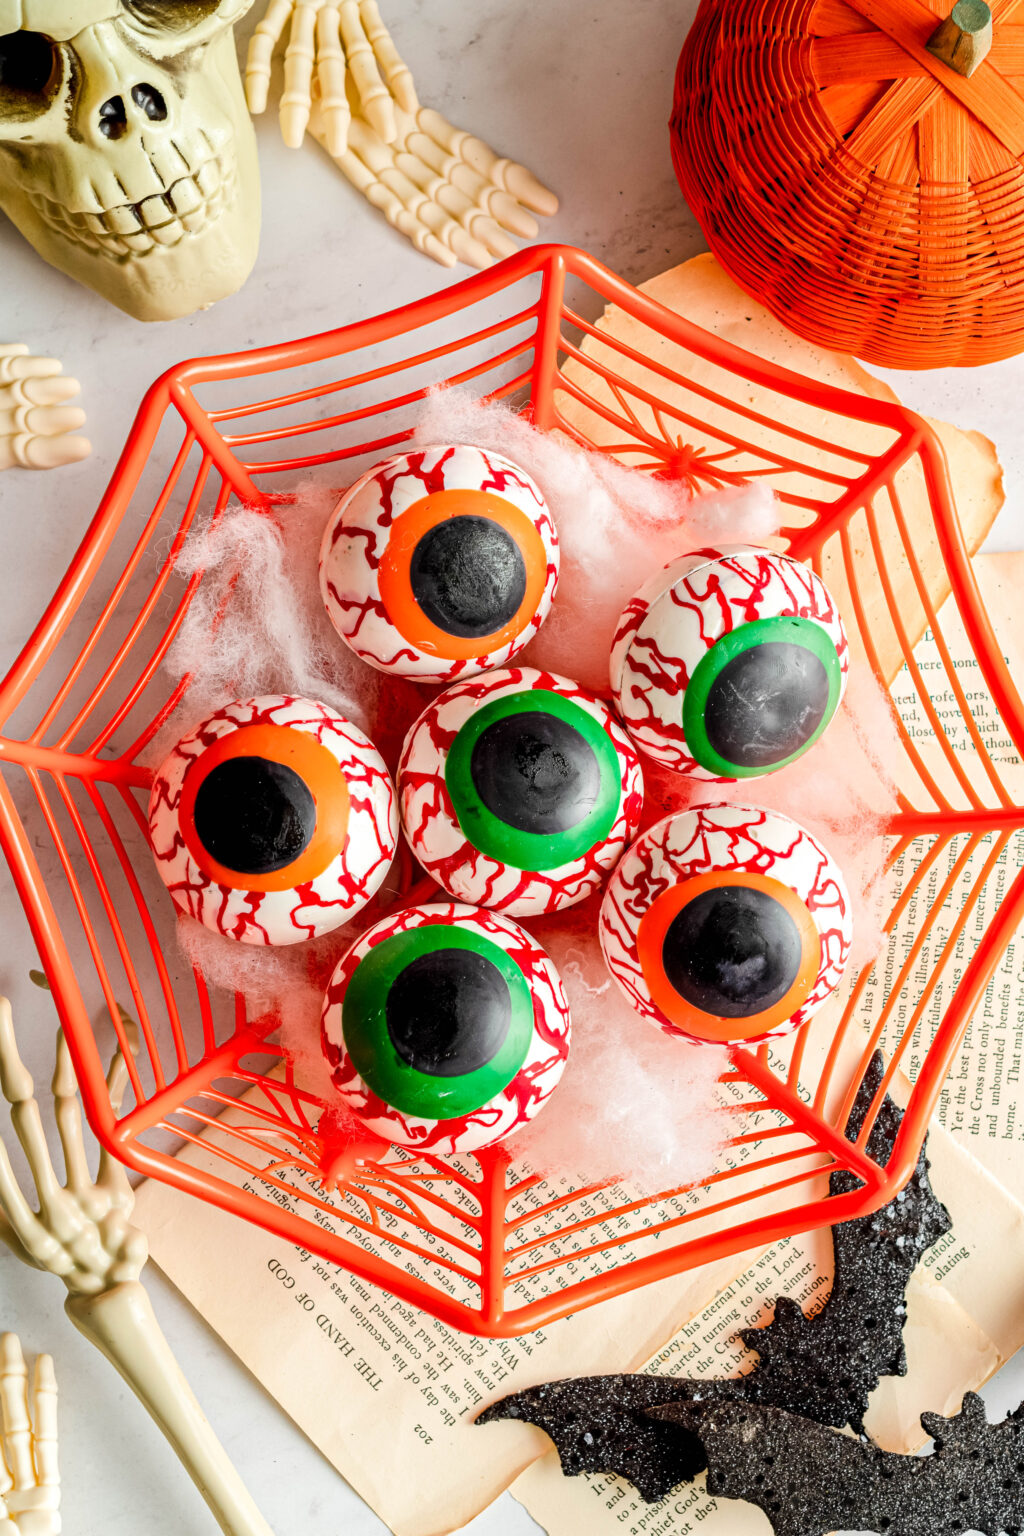 eyeball hot cocoa bombs in an orange container